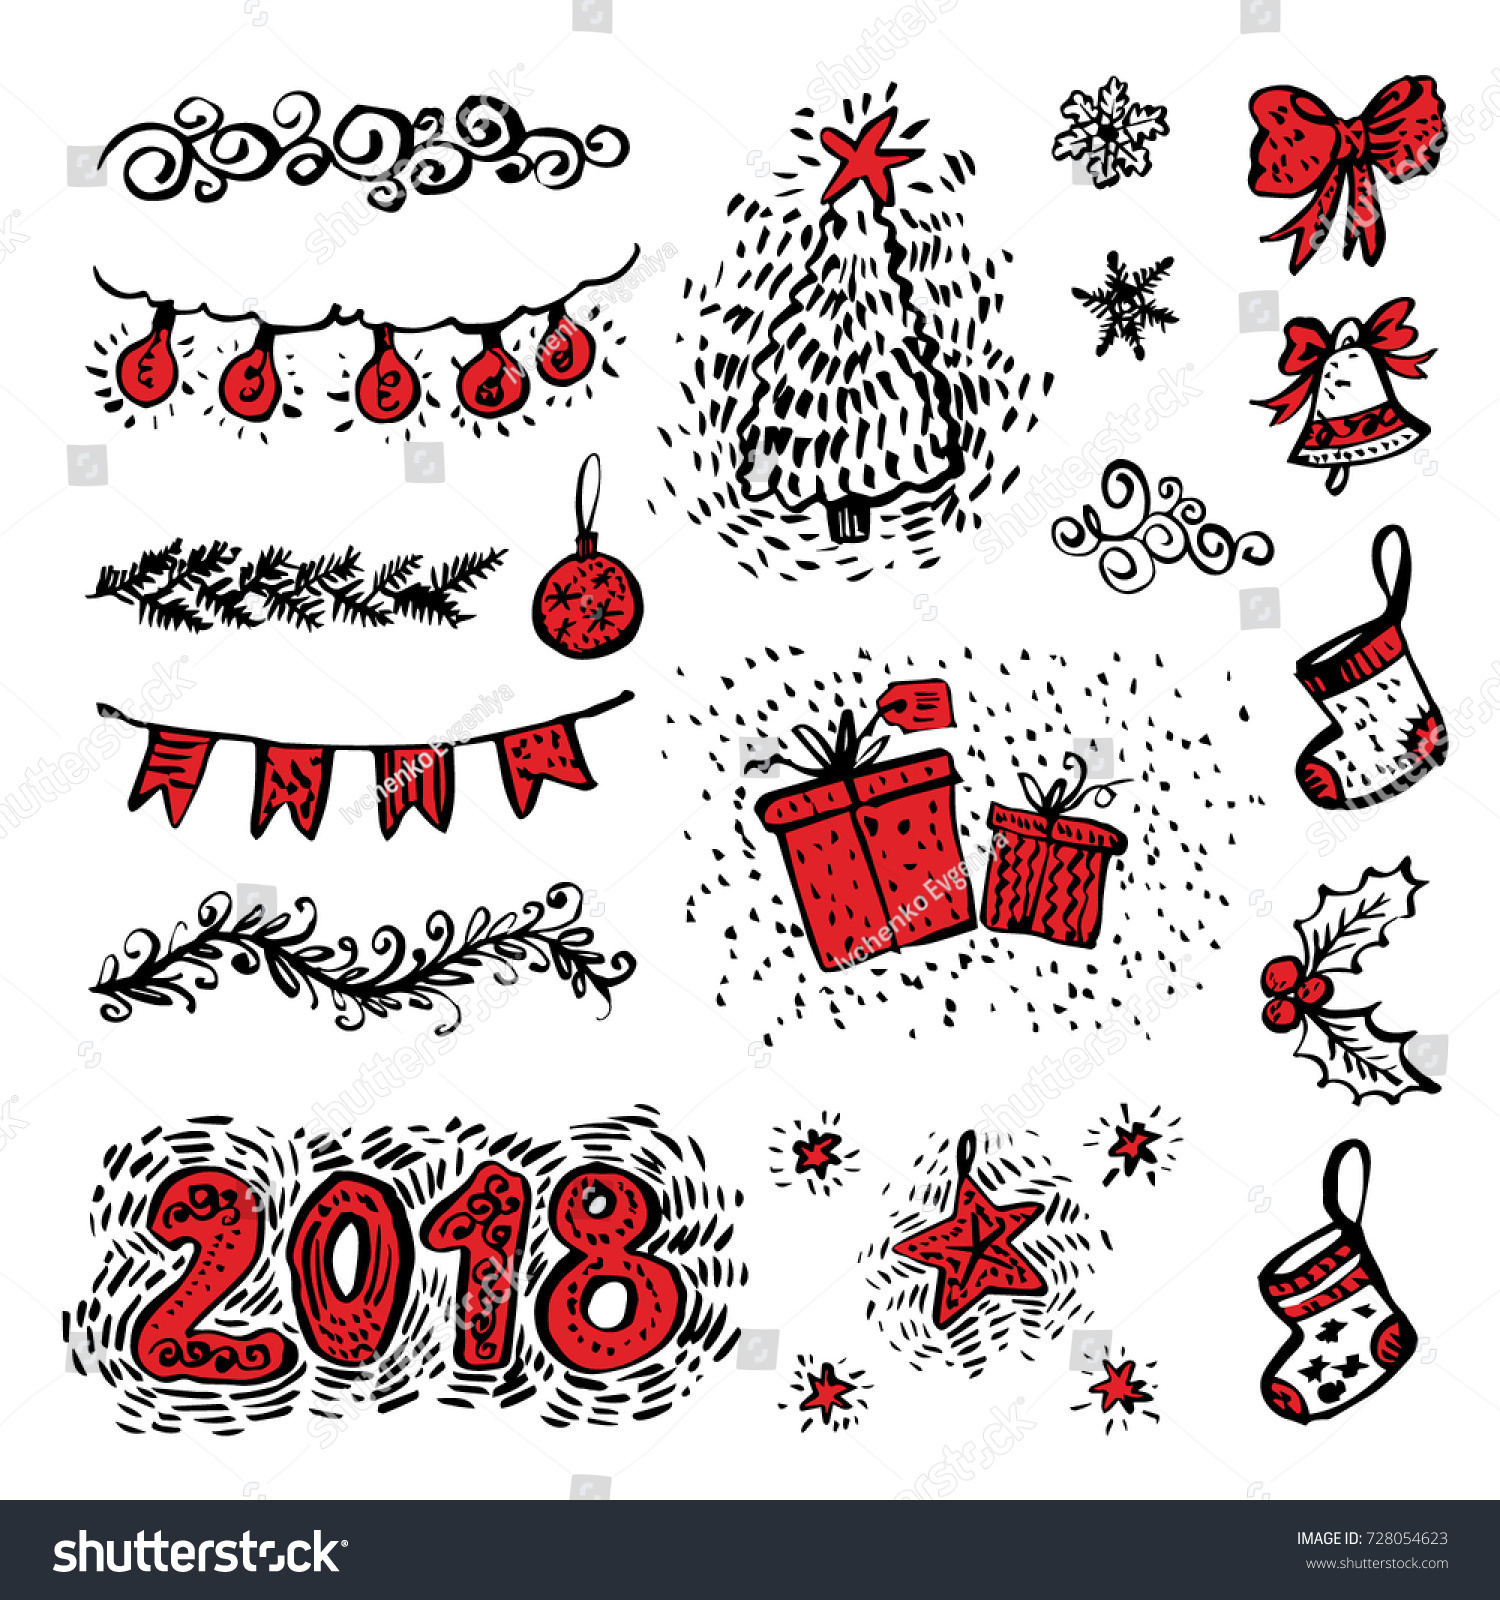 Seasons greetings hand drawn christmas holiday stock vector seasons greetings hand drawn christmas holiday collection with illustration and decoration elements for greeting cards kristyandbryce Choice Image